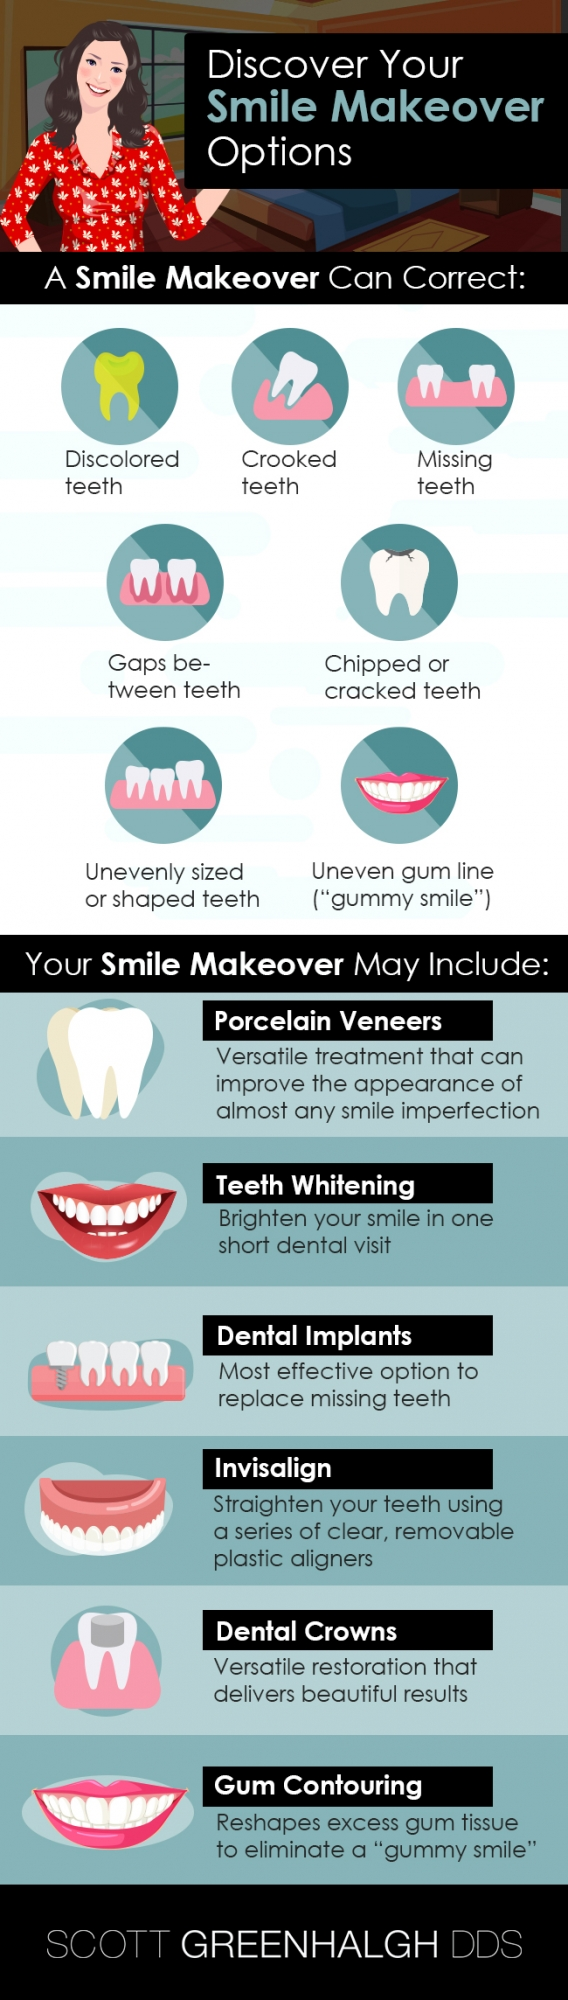 smile makeover infographic - Lakewood cosmetic dentist